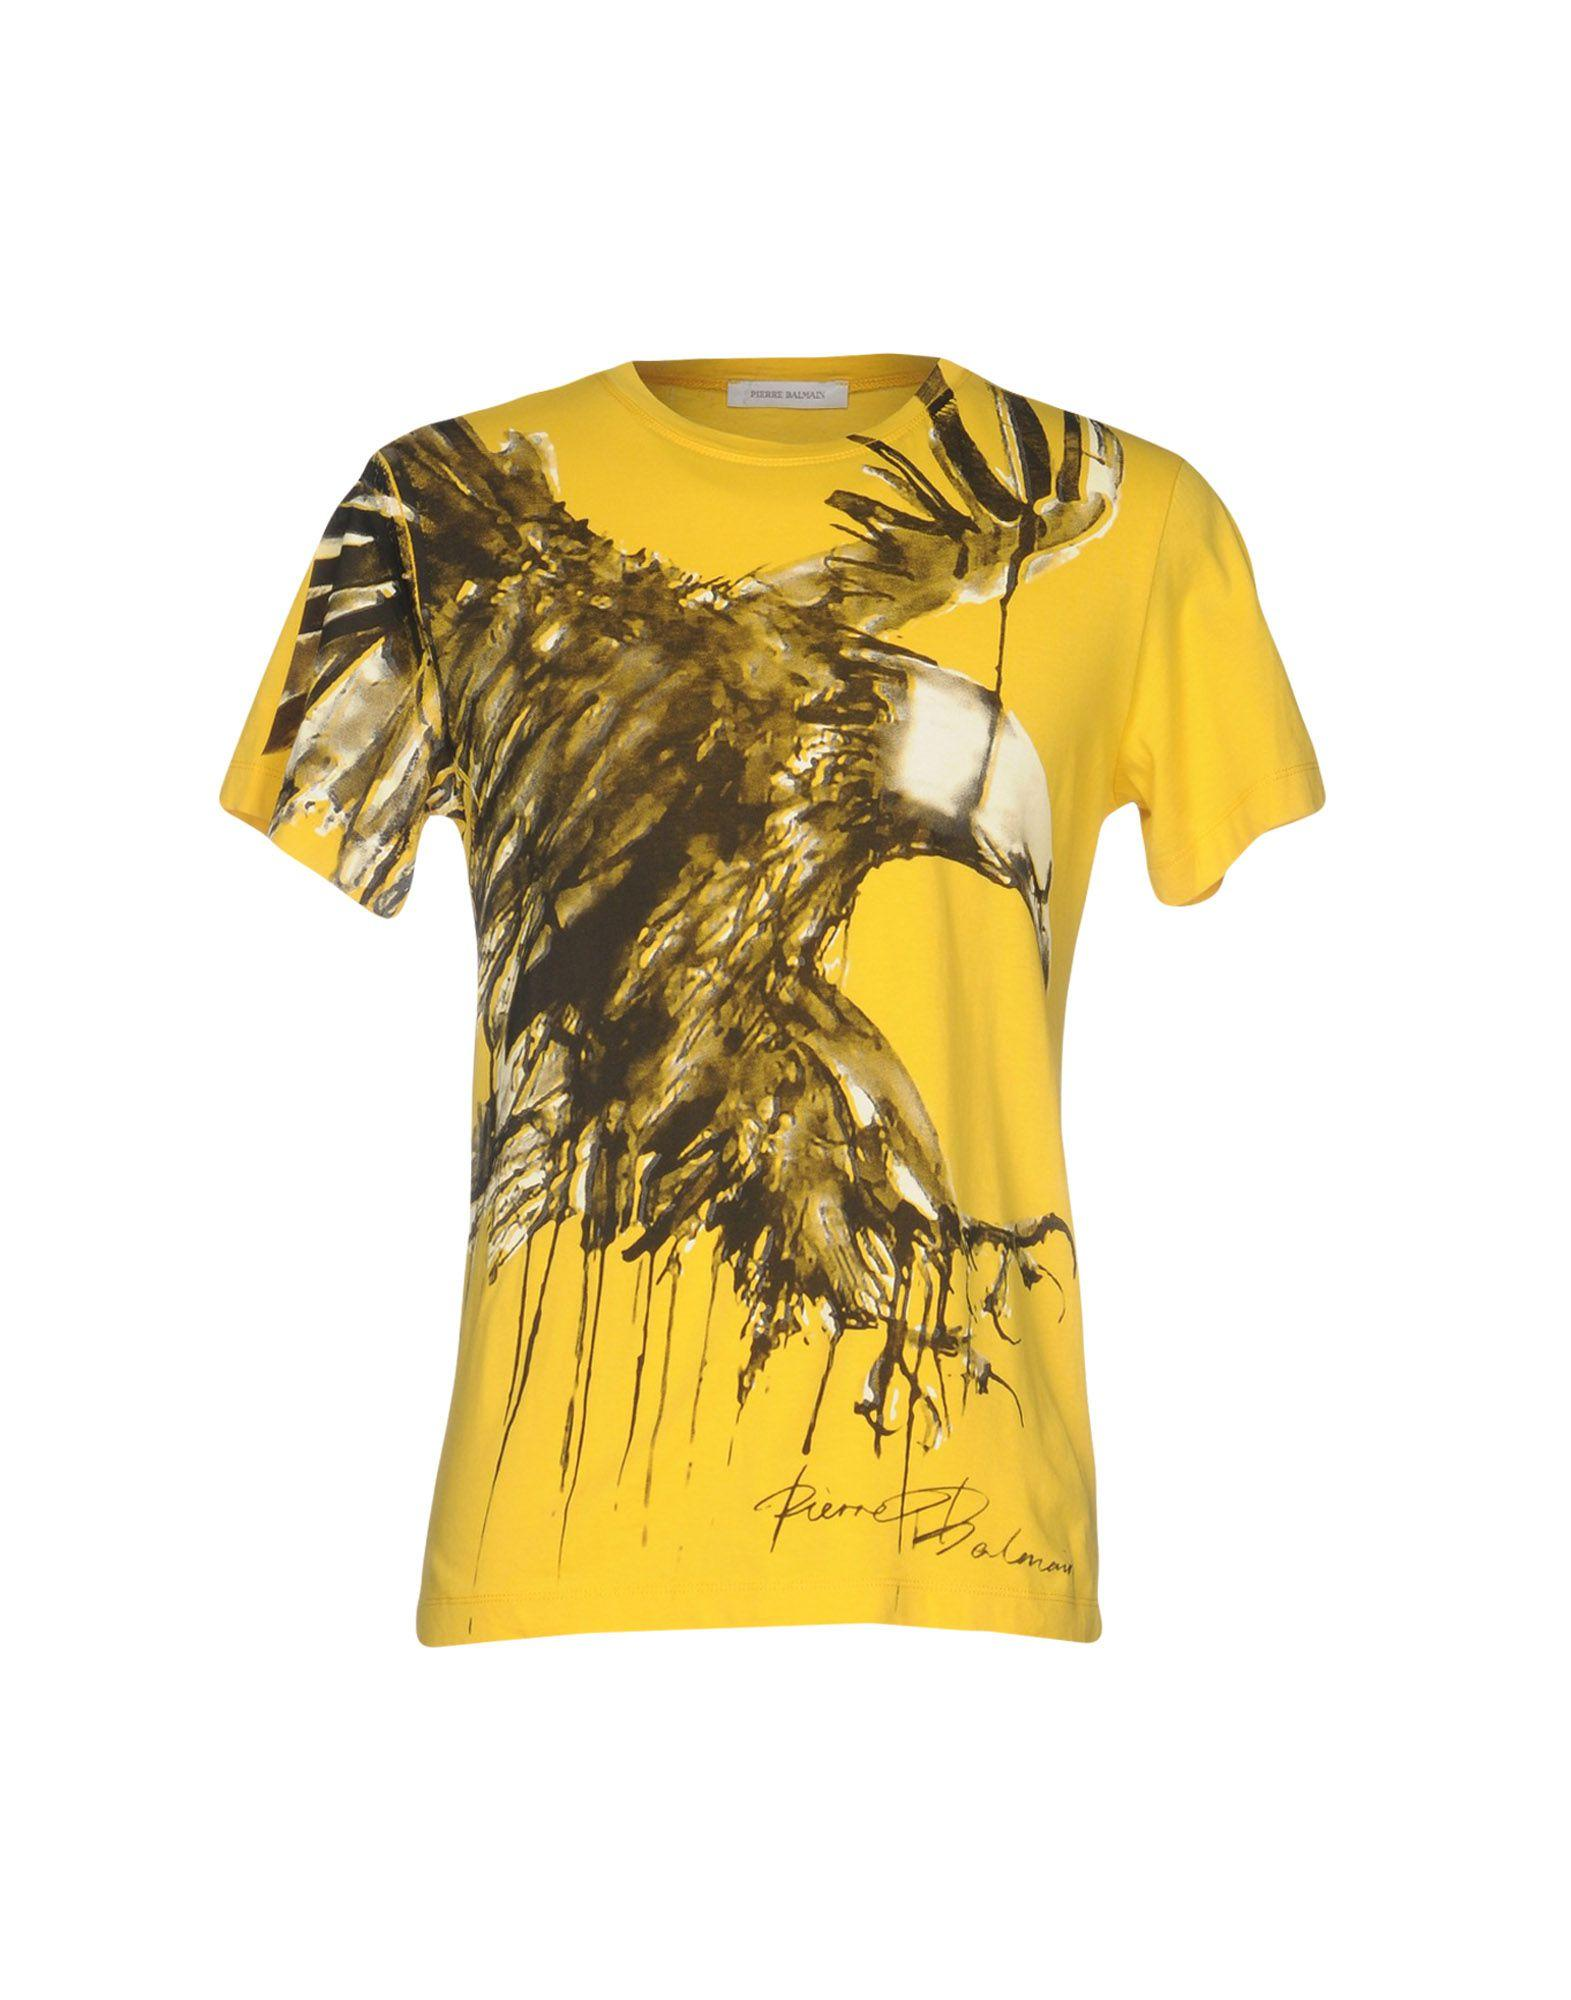 lyst balmain t shirt in yellow for men. Black Bedroom Furniture Sets. Home Design Ideas